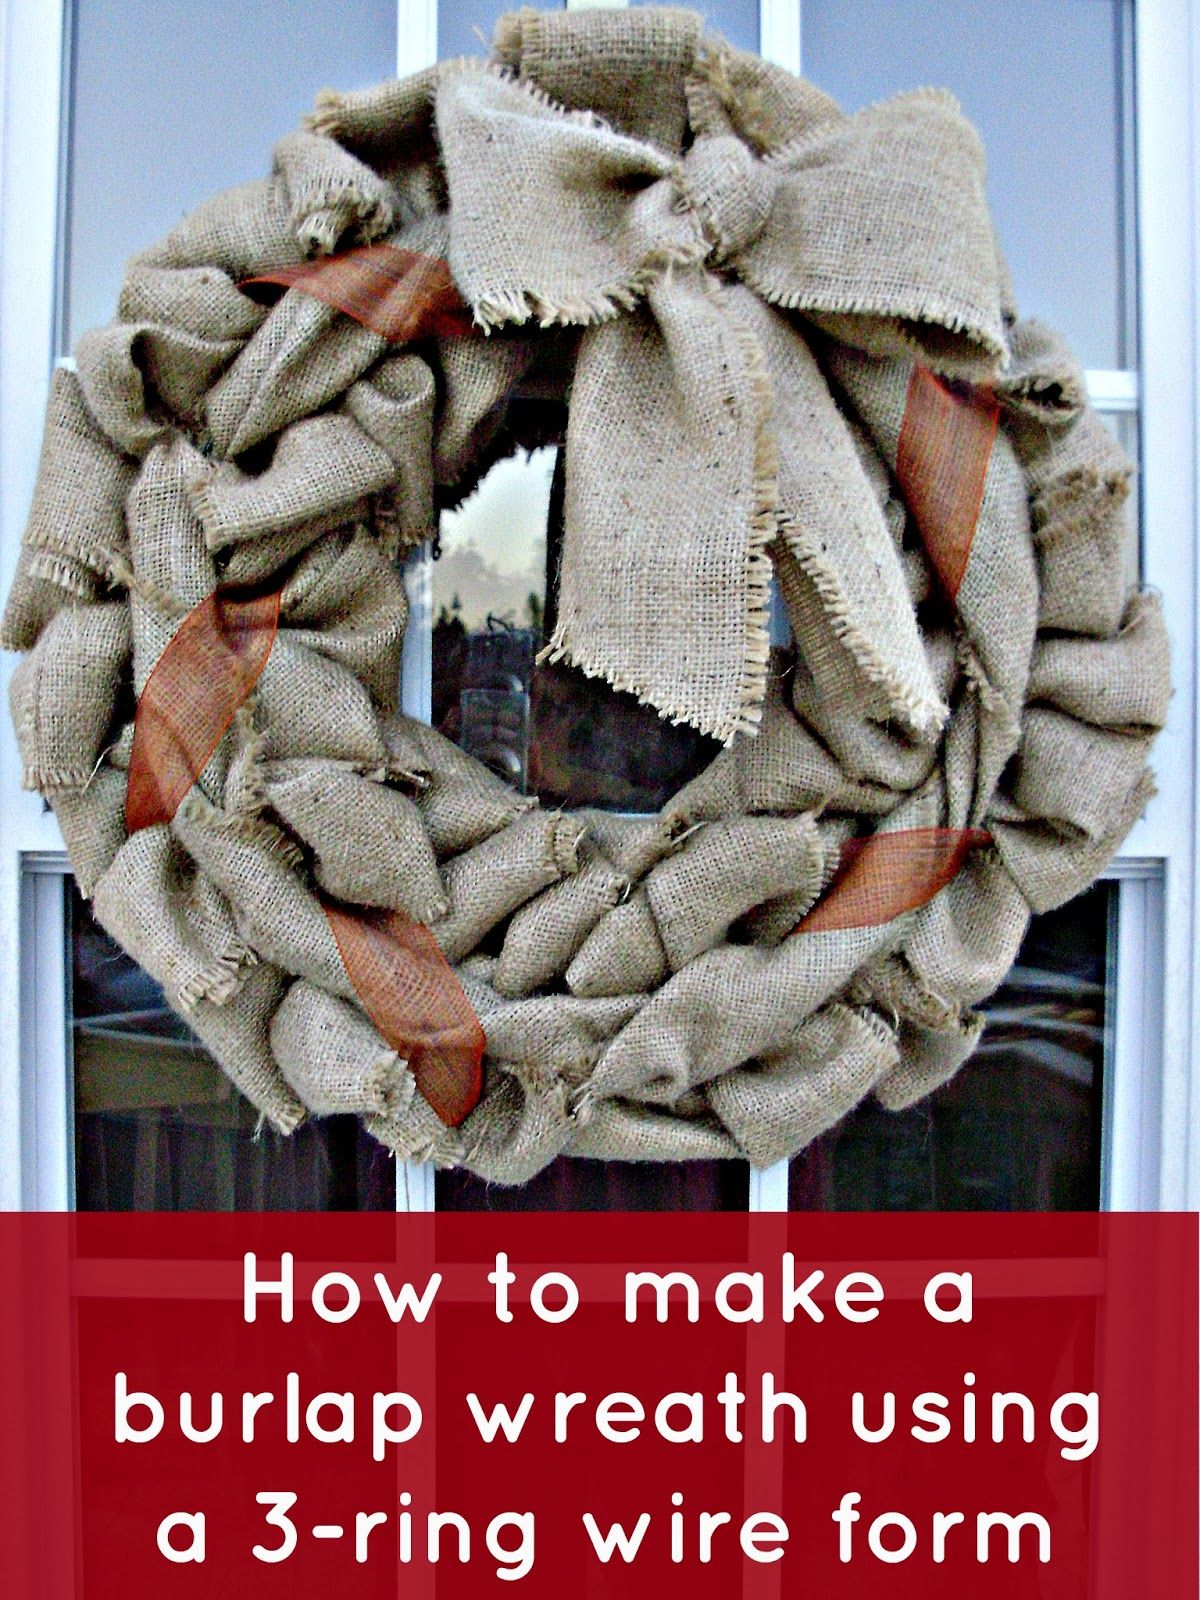 Wire Wreath Making | how+to+make+a+burlap+wreath+using+a+3-ring+wire ...